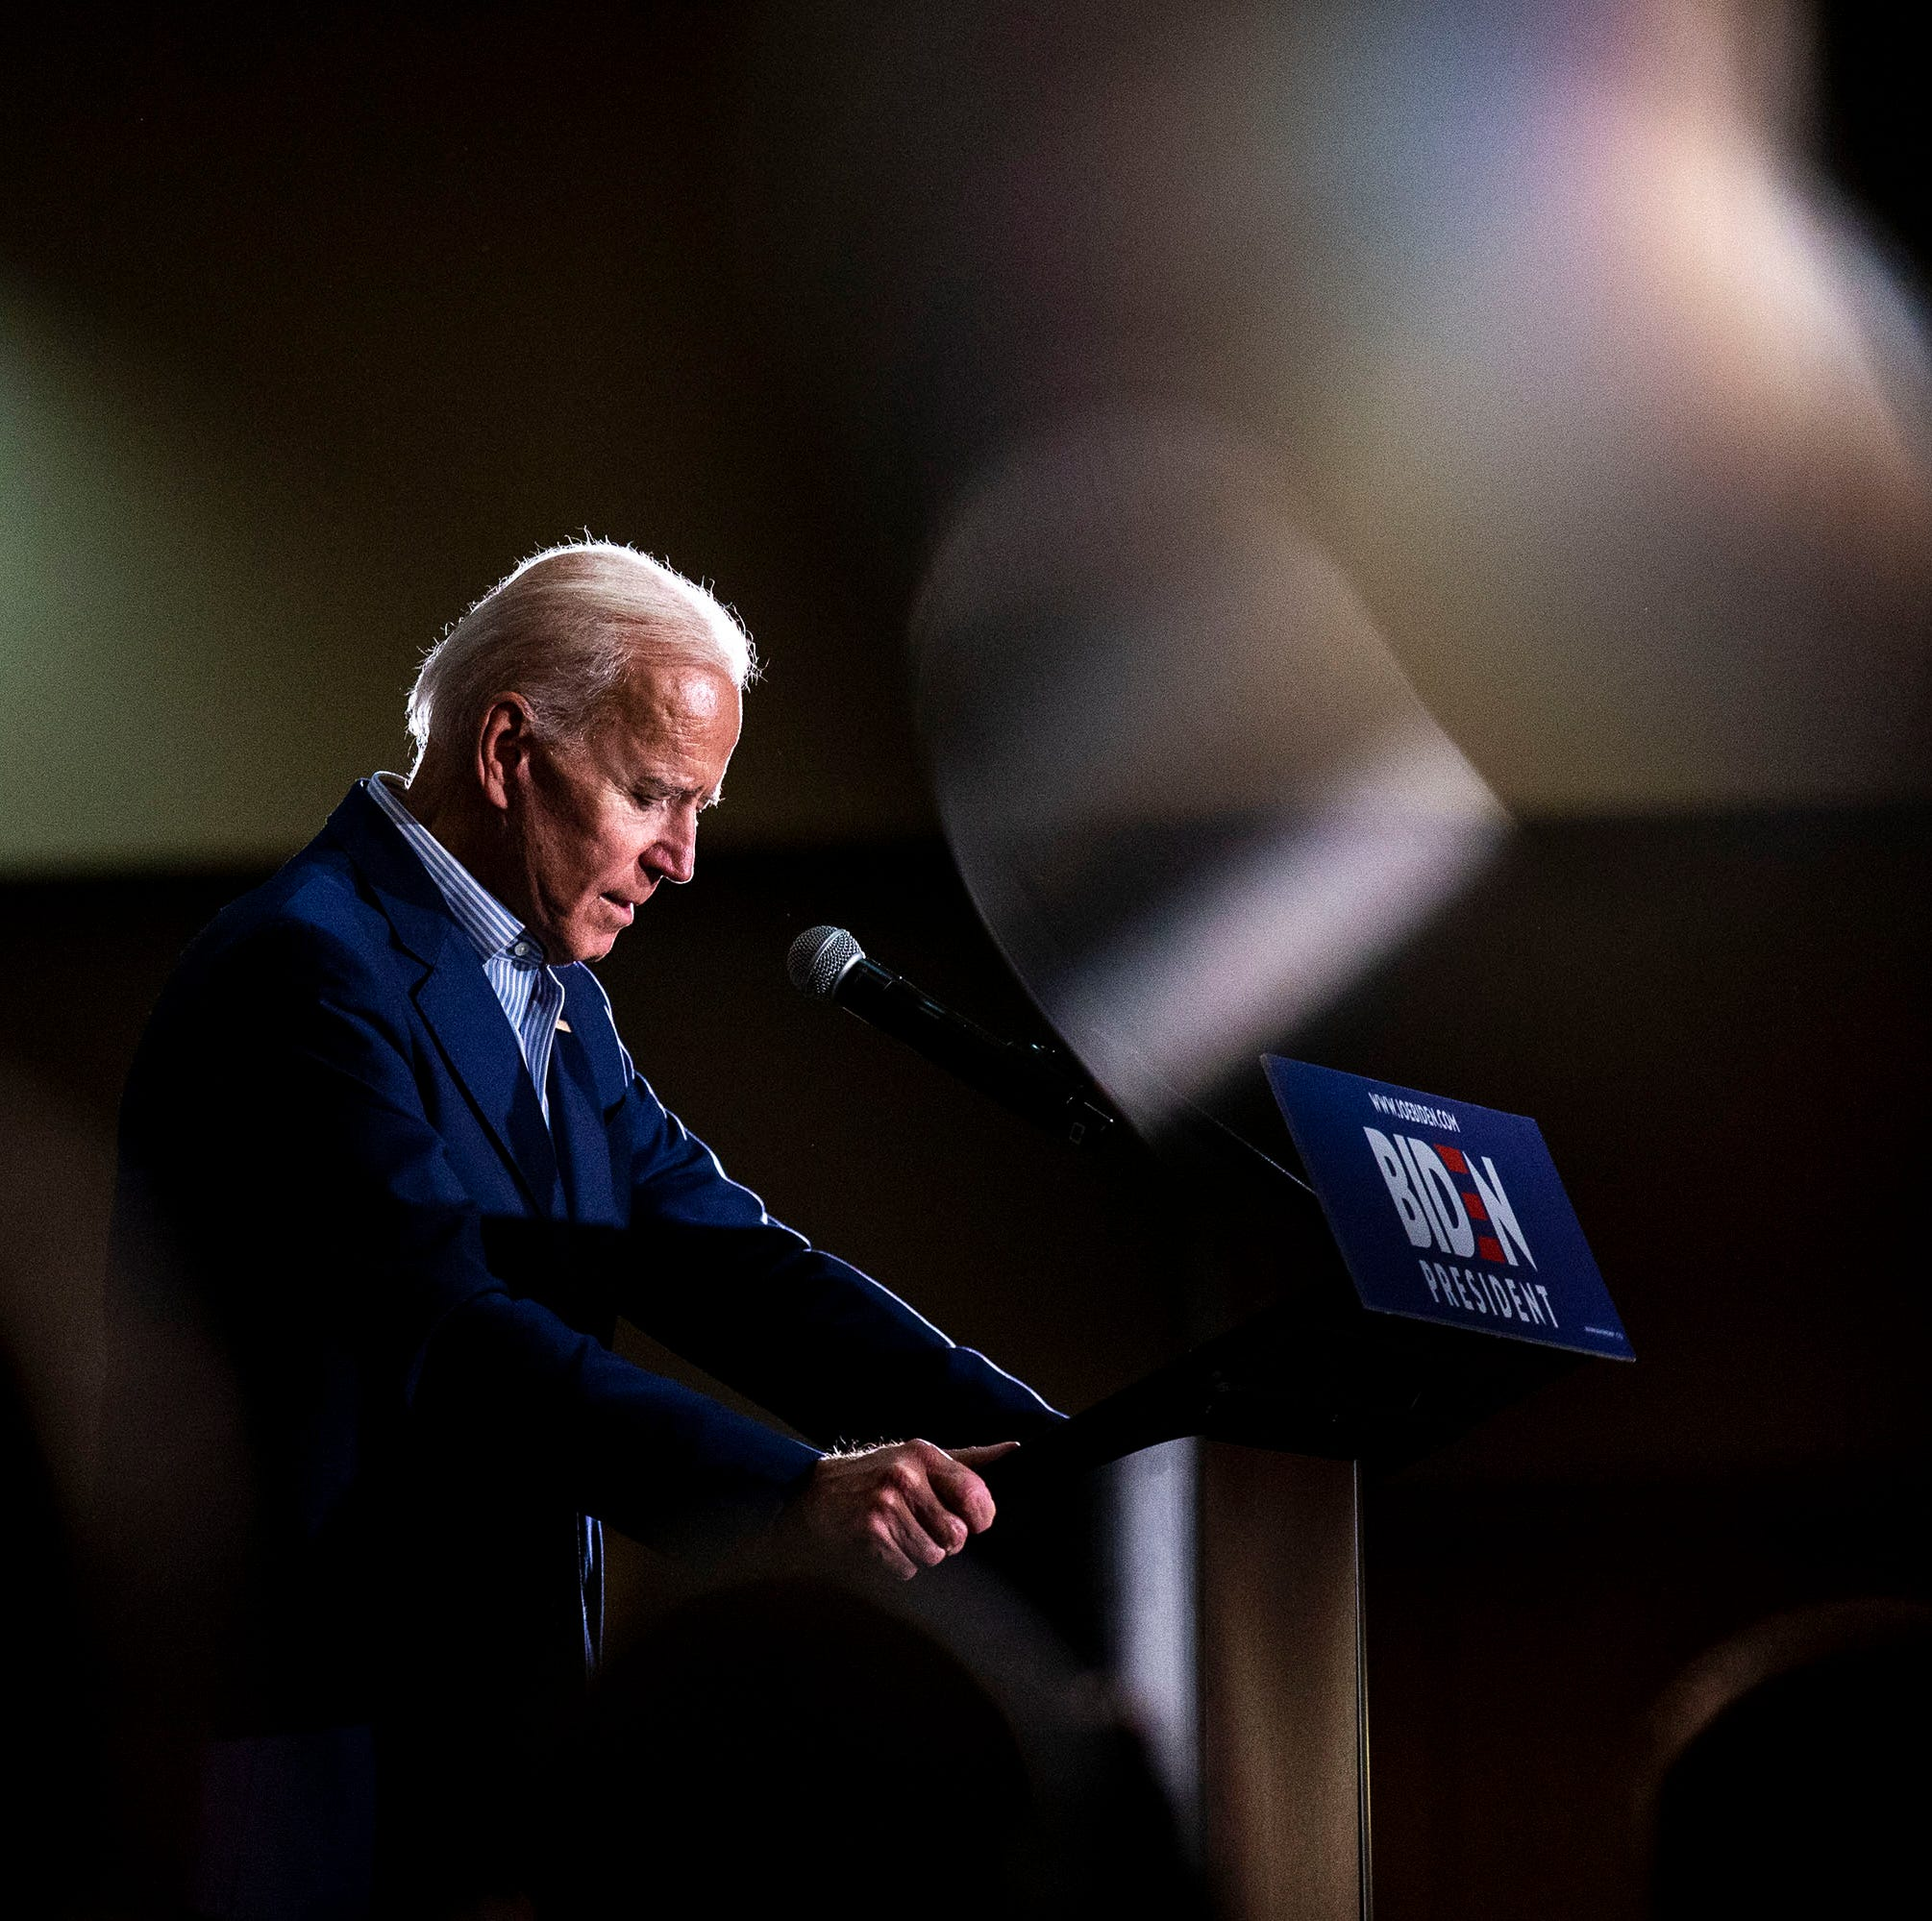 Joe Biden's challenge in Iowa: Going from great on paper to standing out in crowded, diverse field